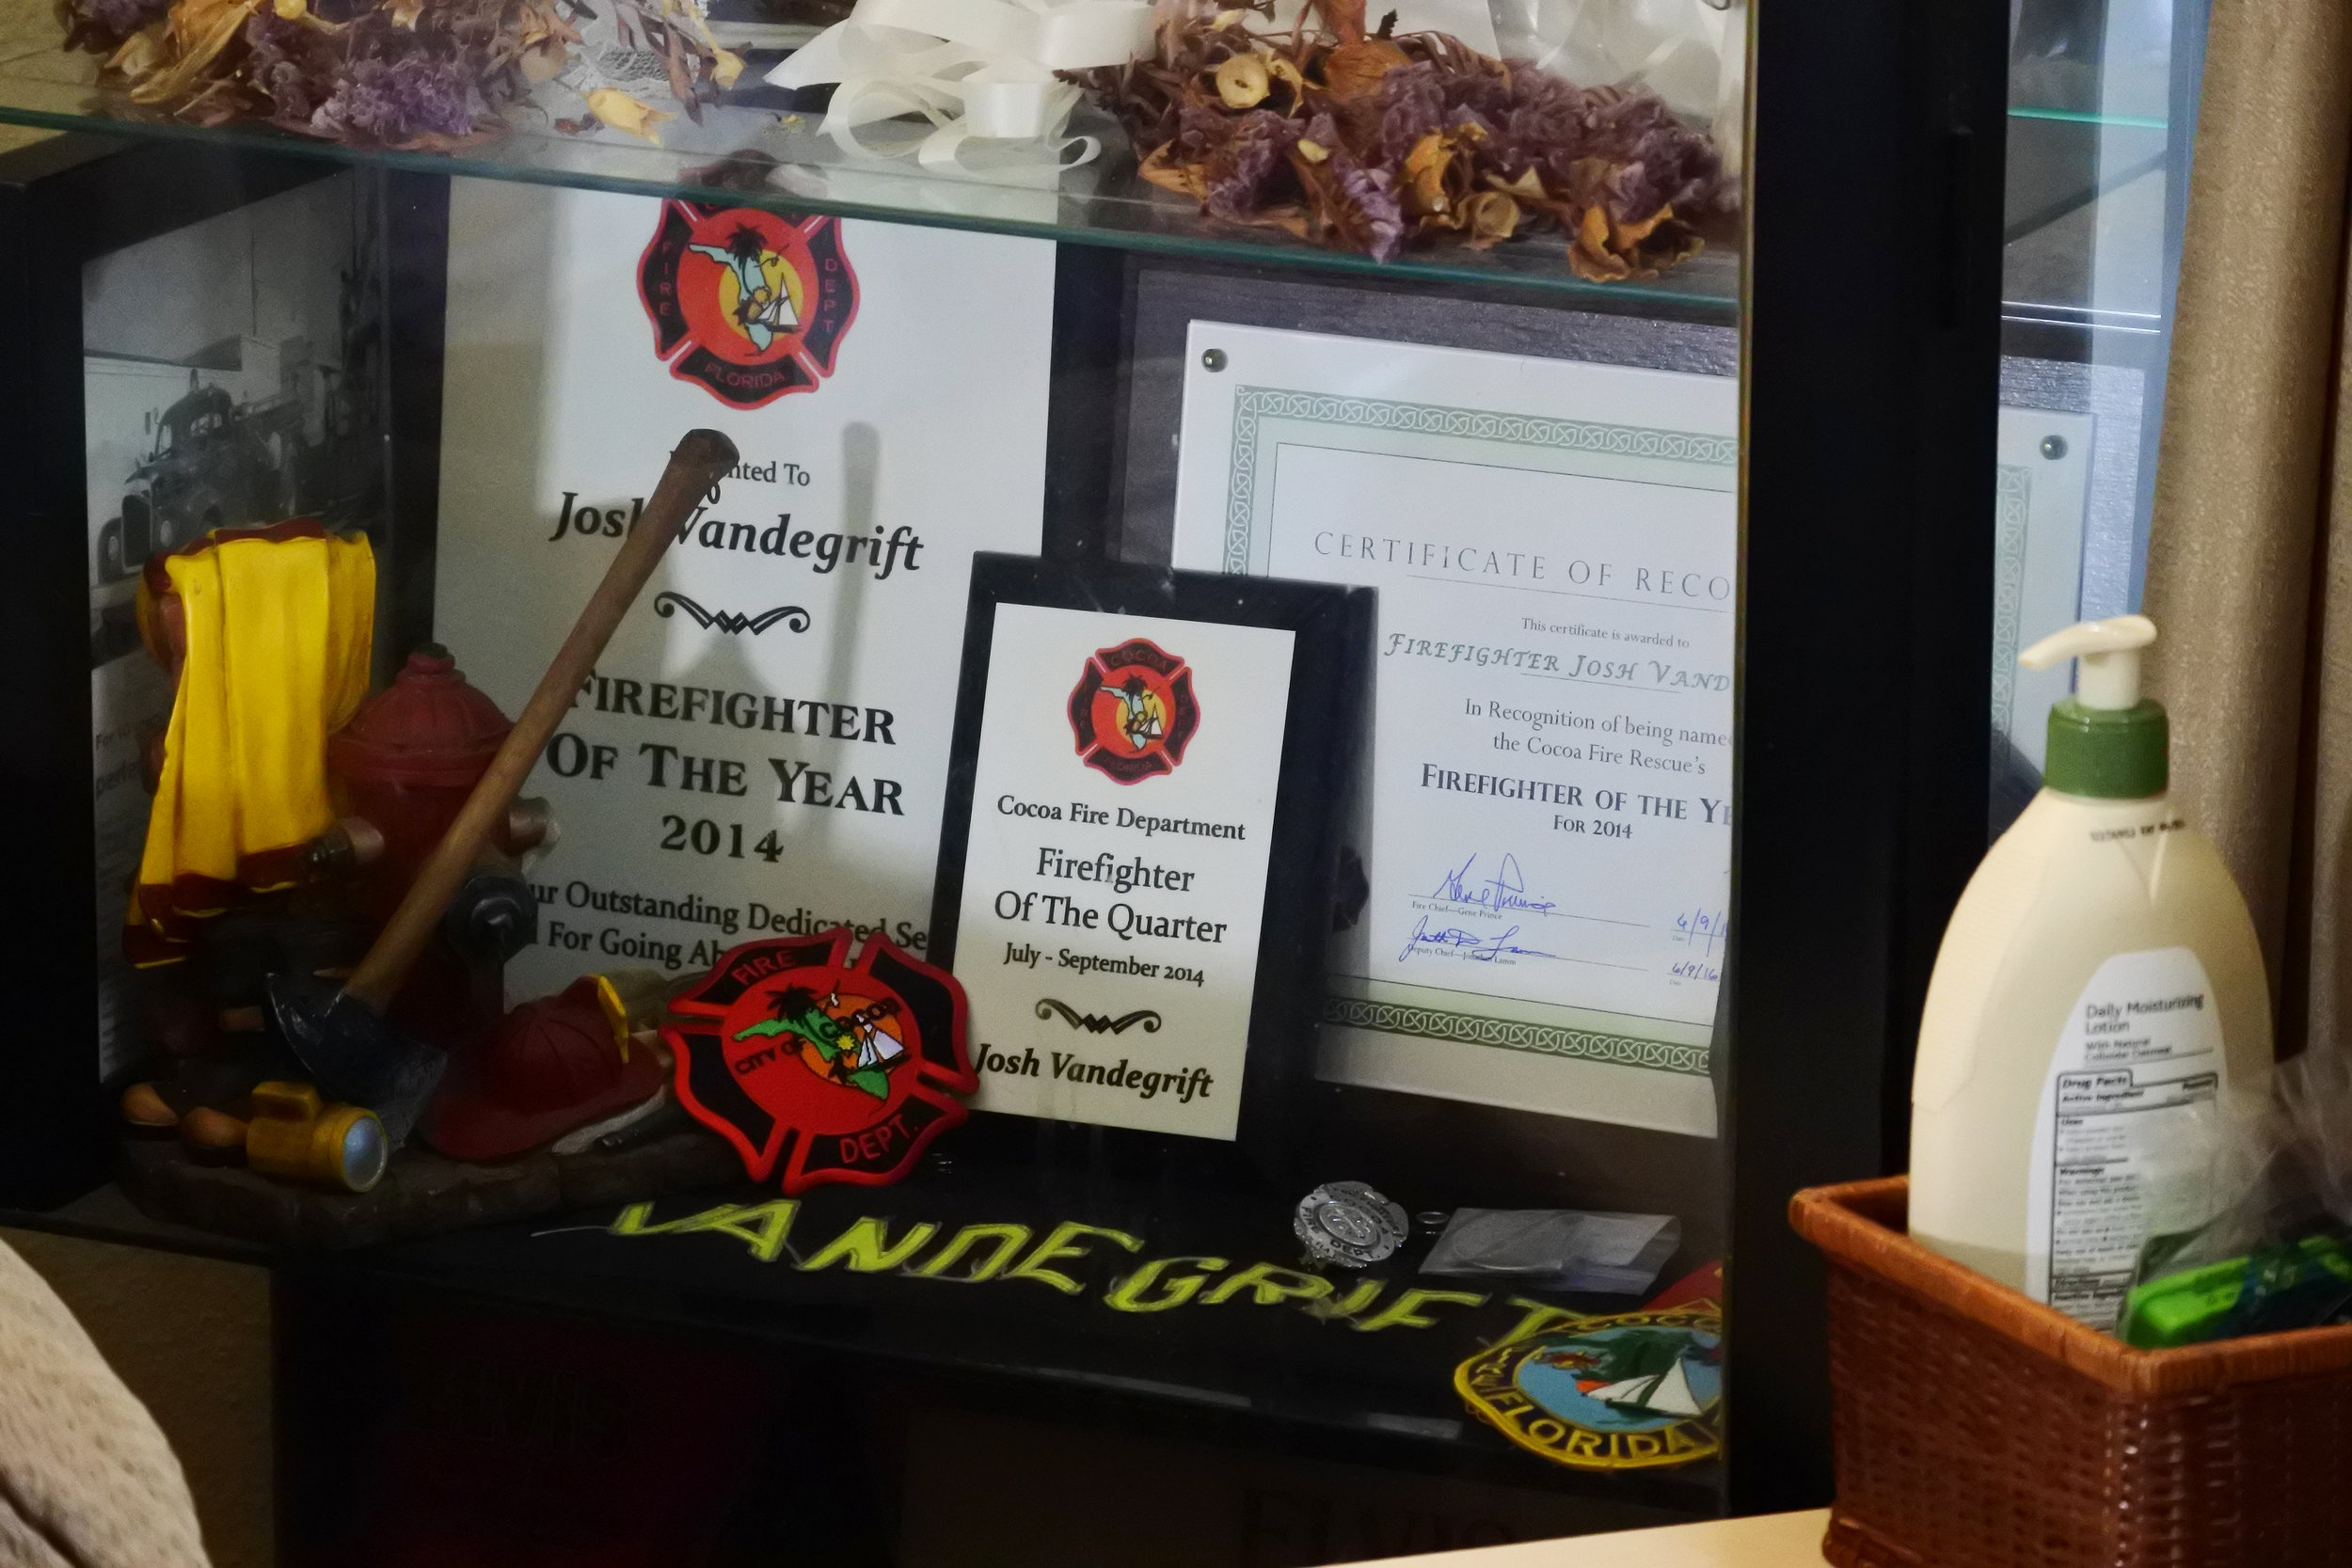 """A collection of firefighting awards and memorabilia sit on a shelf in Josh Vandegrift's home, including """"Firefighter of the Year"""" in 2014."""